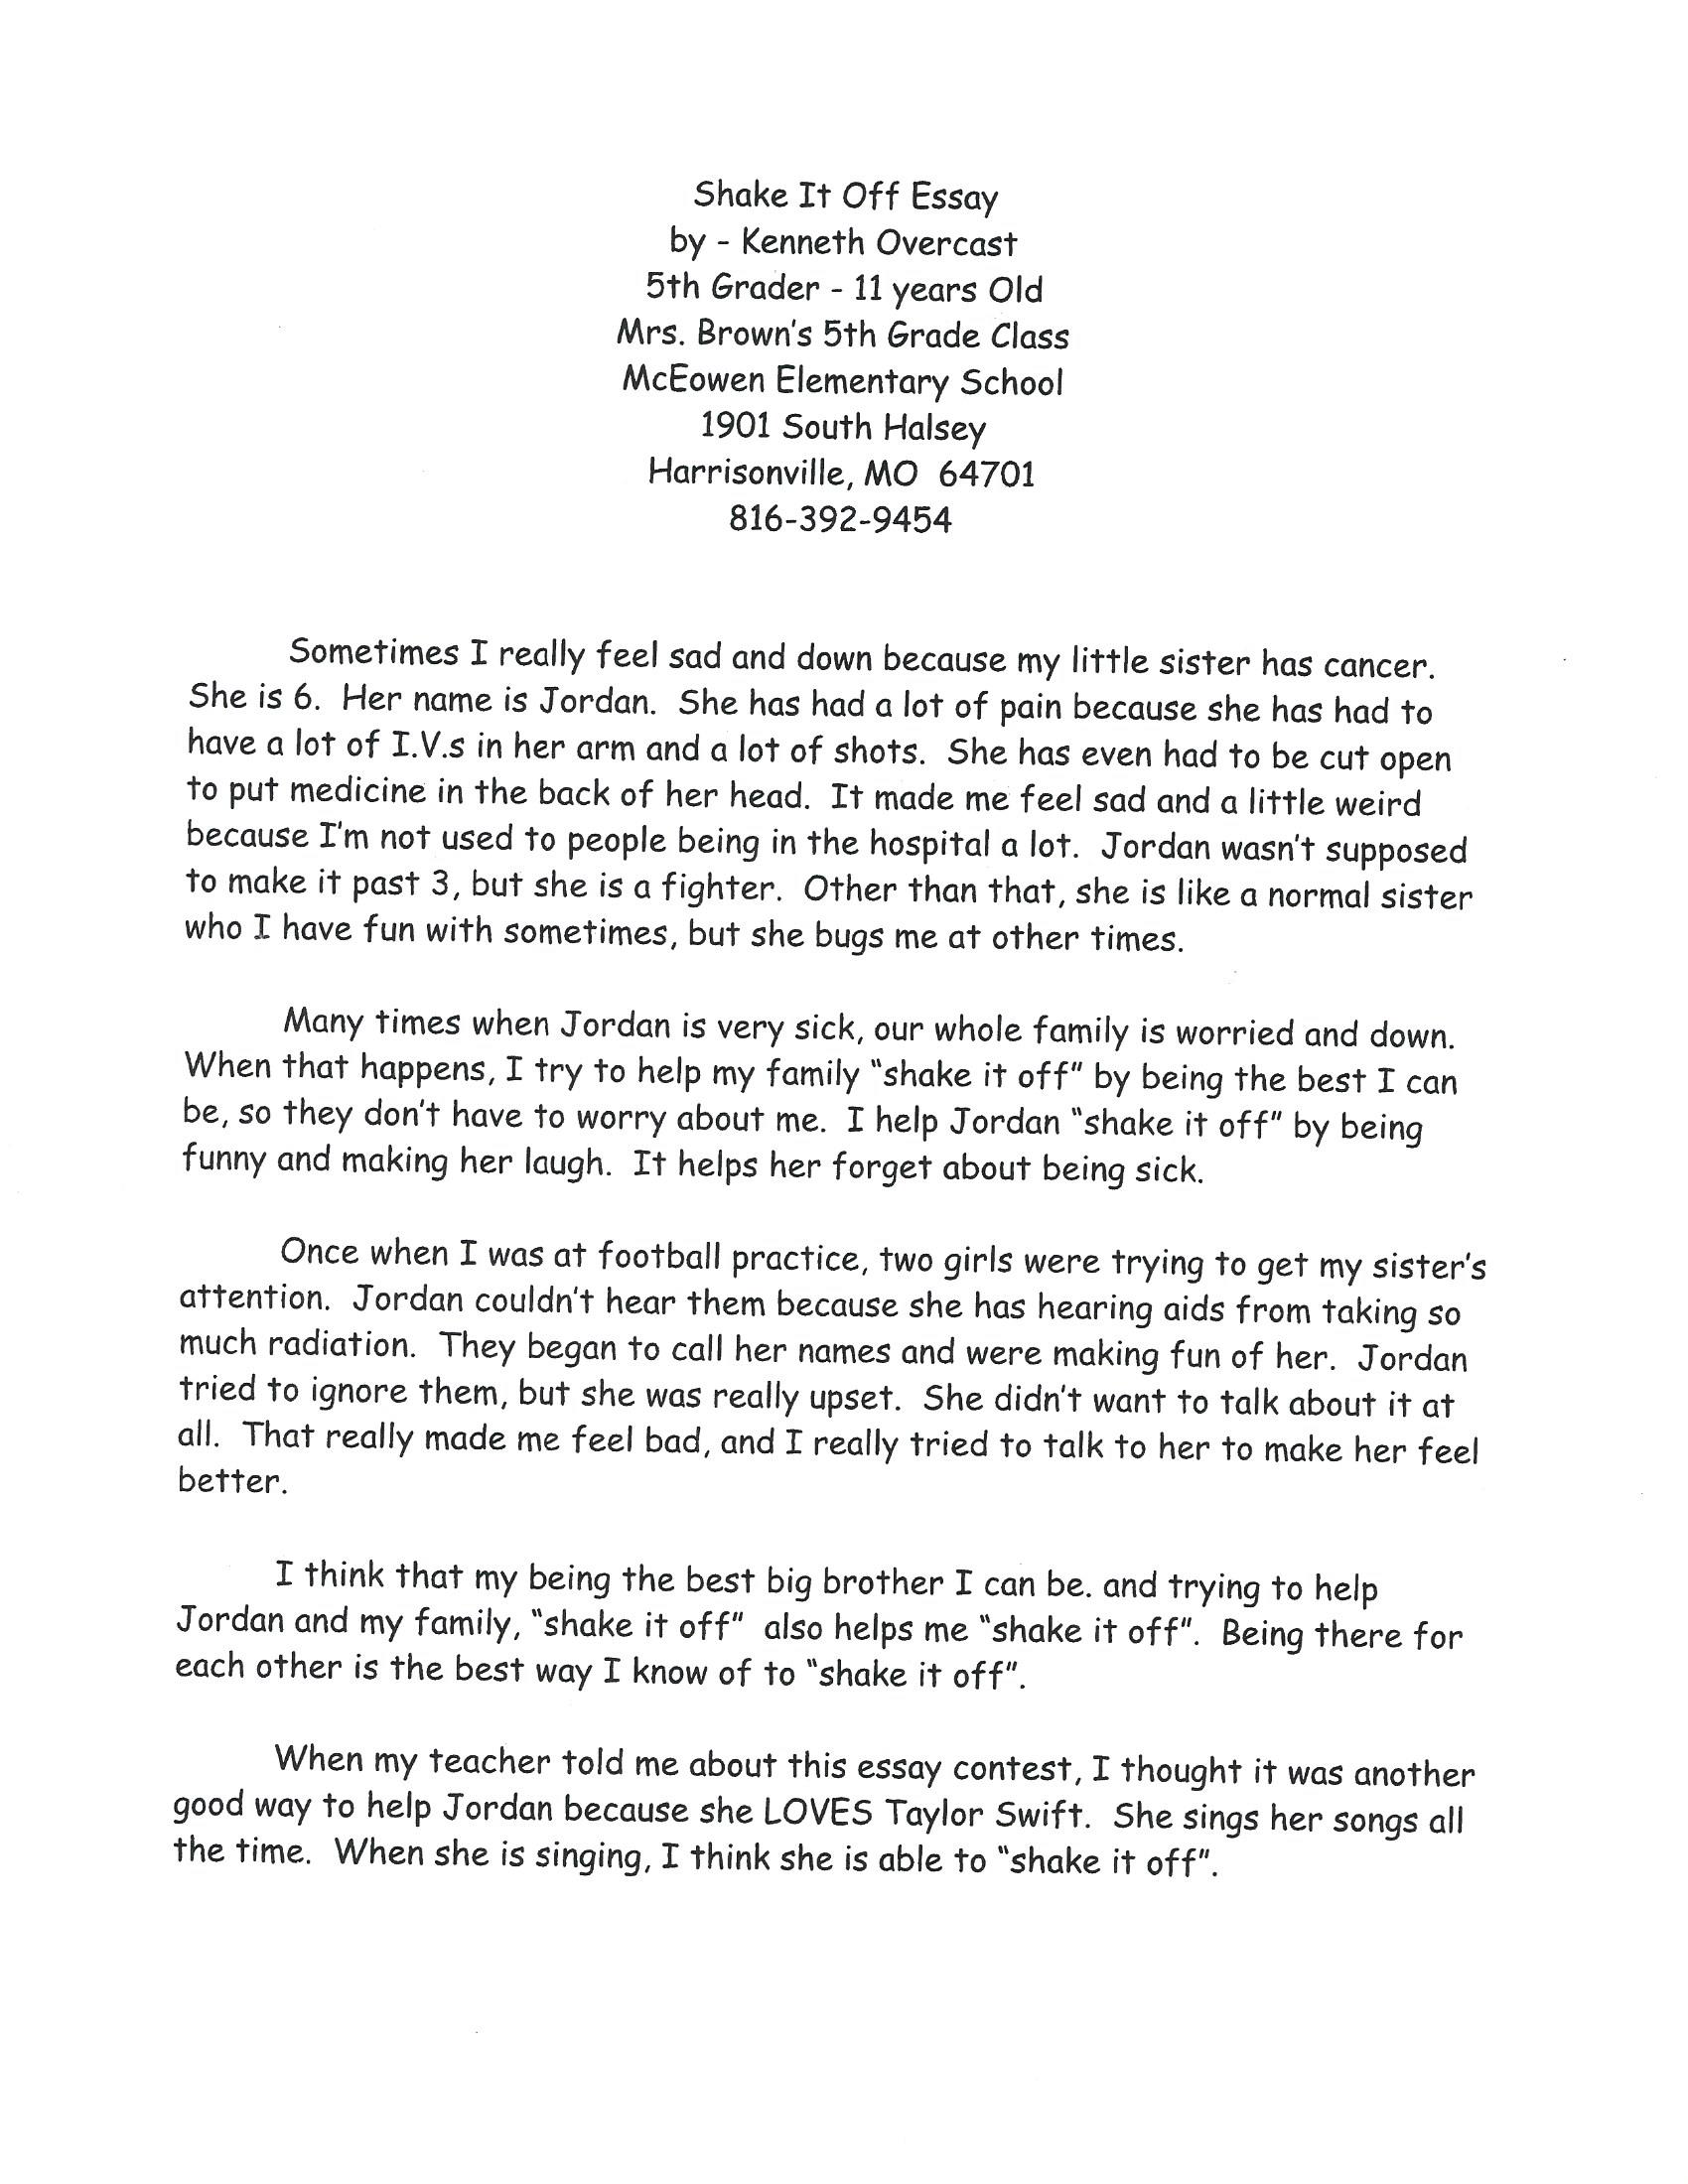 002 Essay About Losing Someone Example Fearsome A Friend College Full